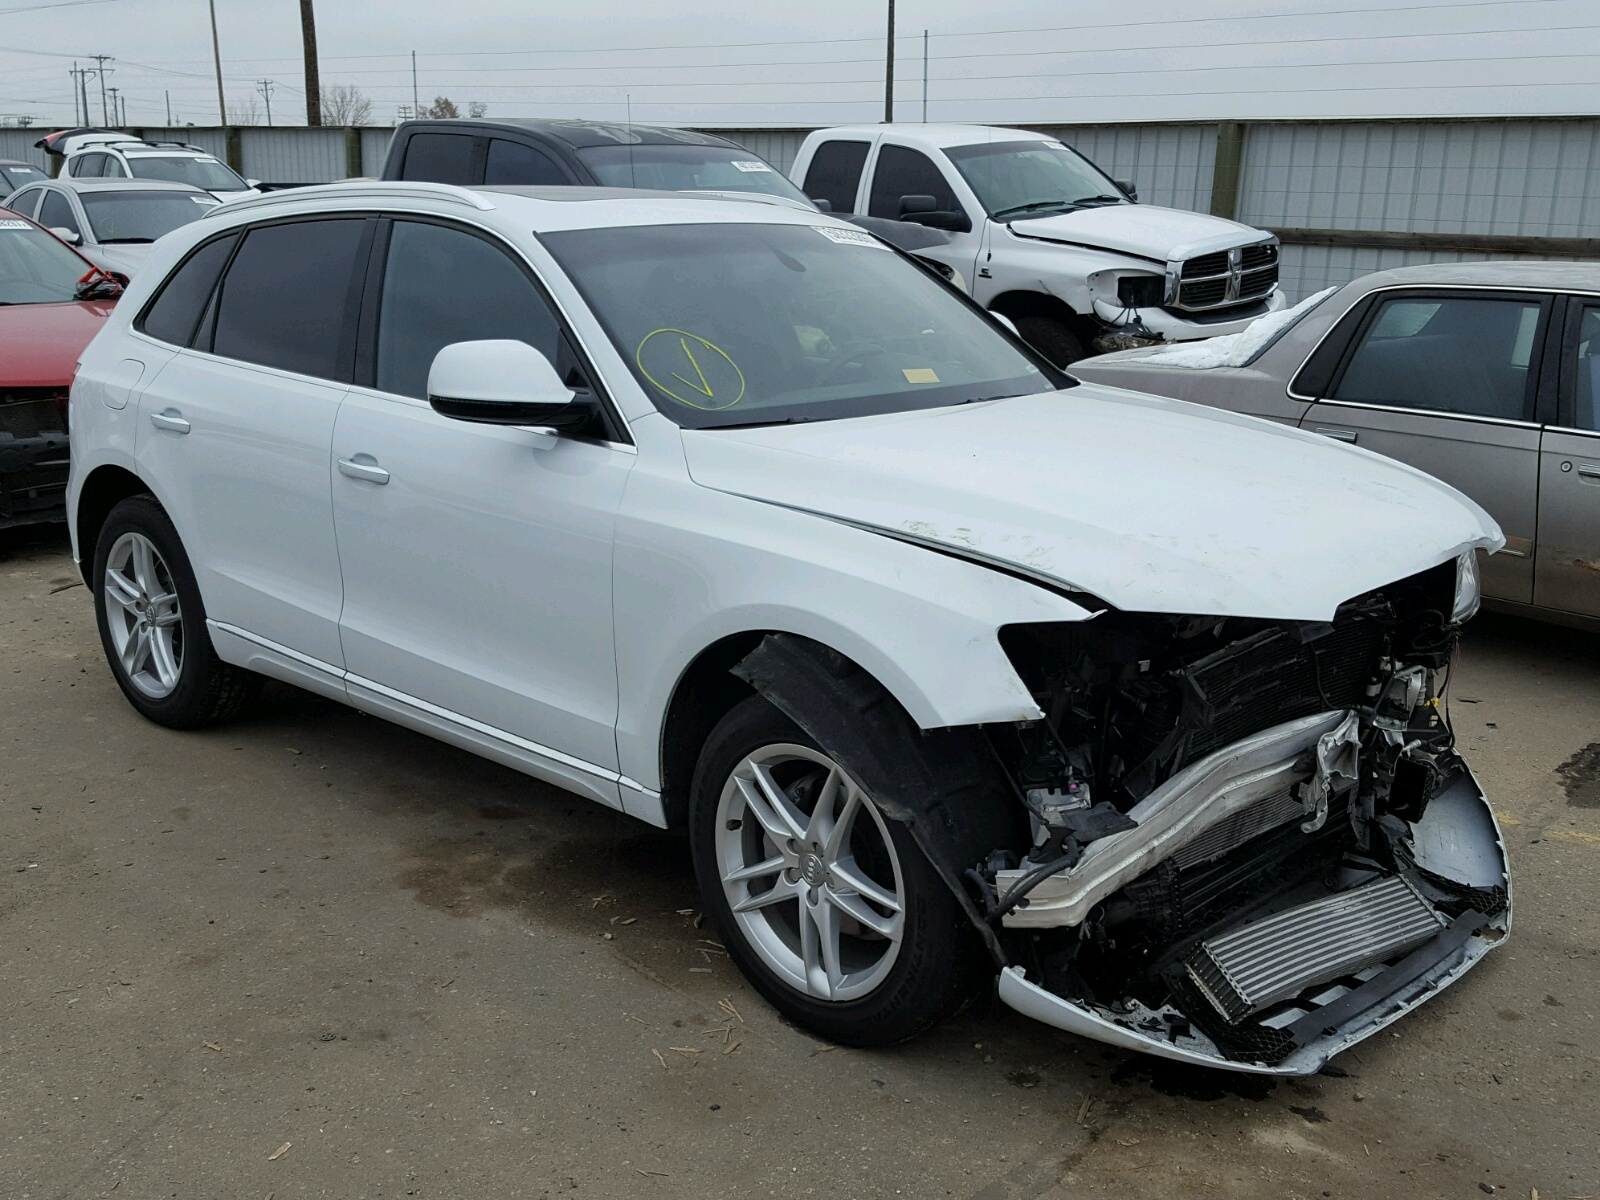 Auto Auction Ended On Vin Waudg74f79n025320 2009 Audi A6